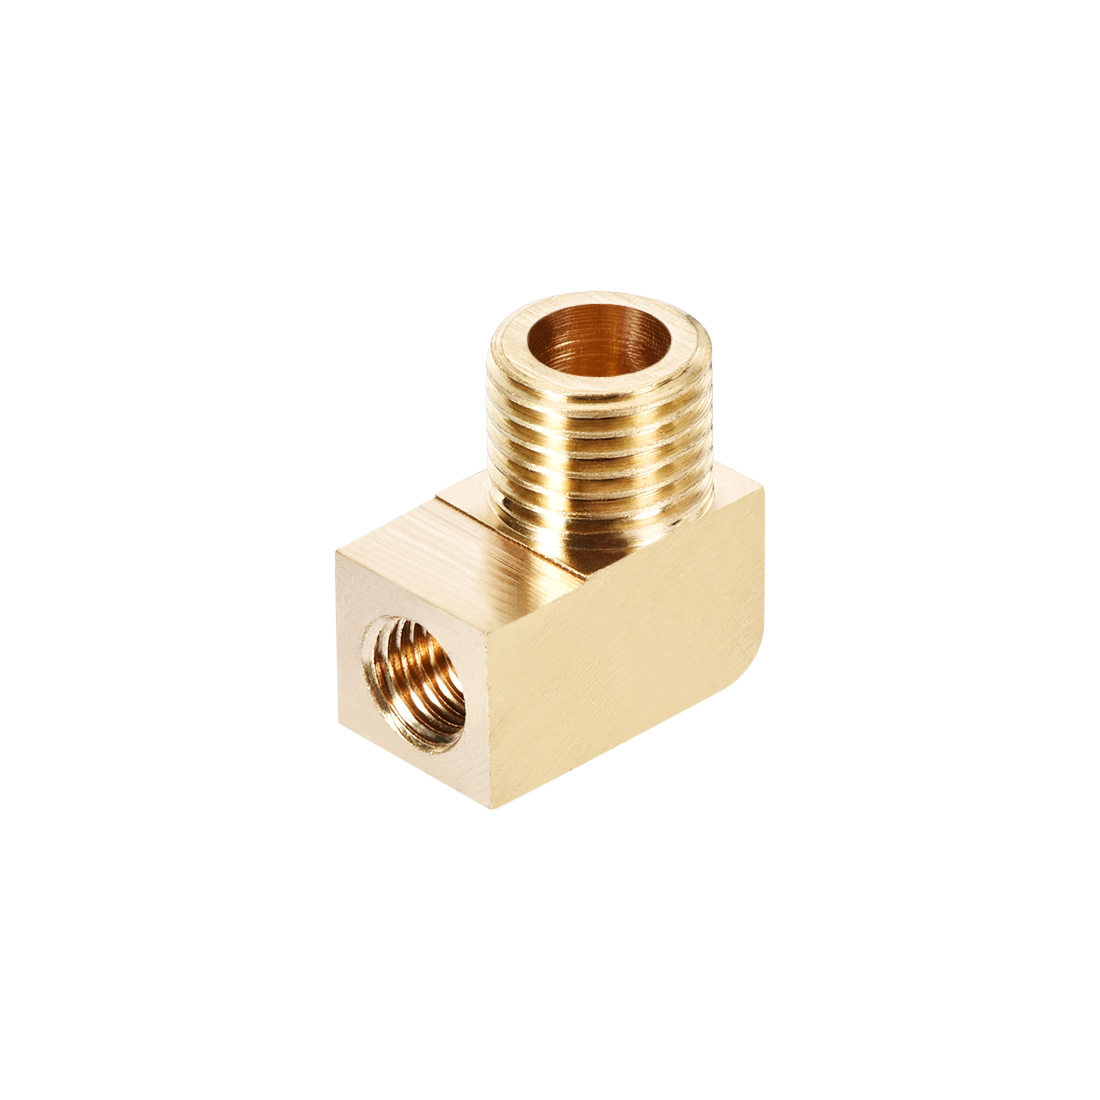 Brass Pipe Fitting 90 Degree Barstock Street Elbow G1/4 Male x M8 Female